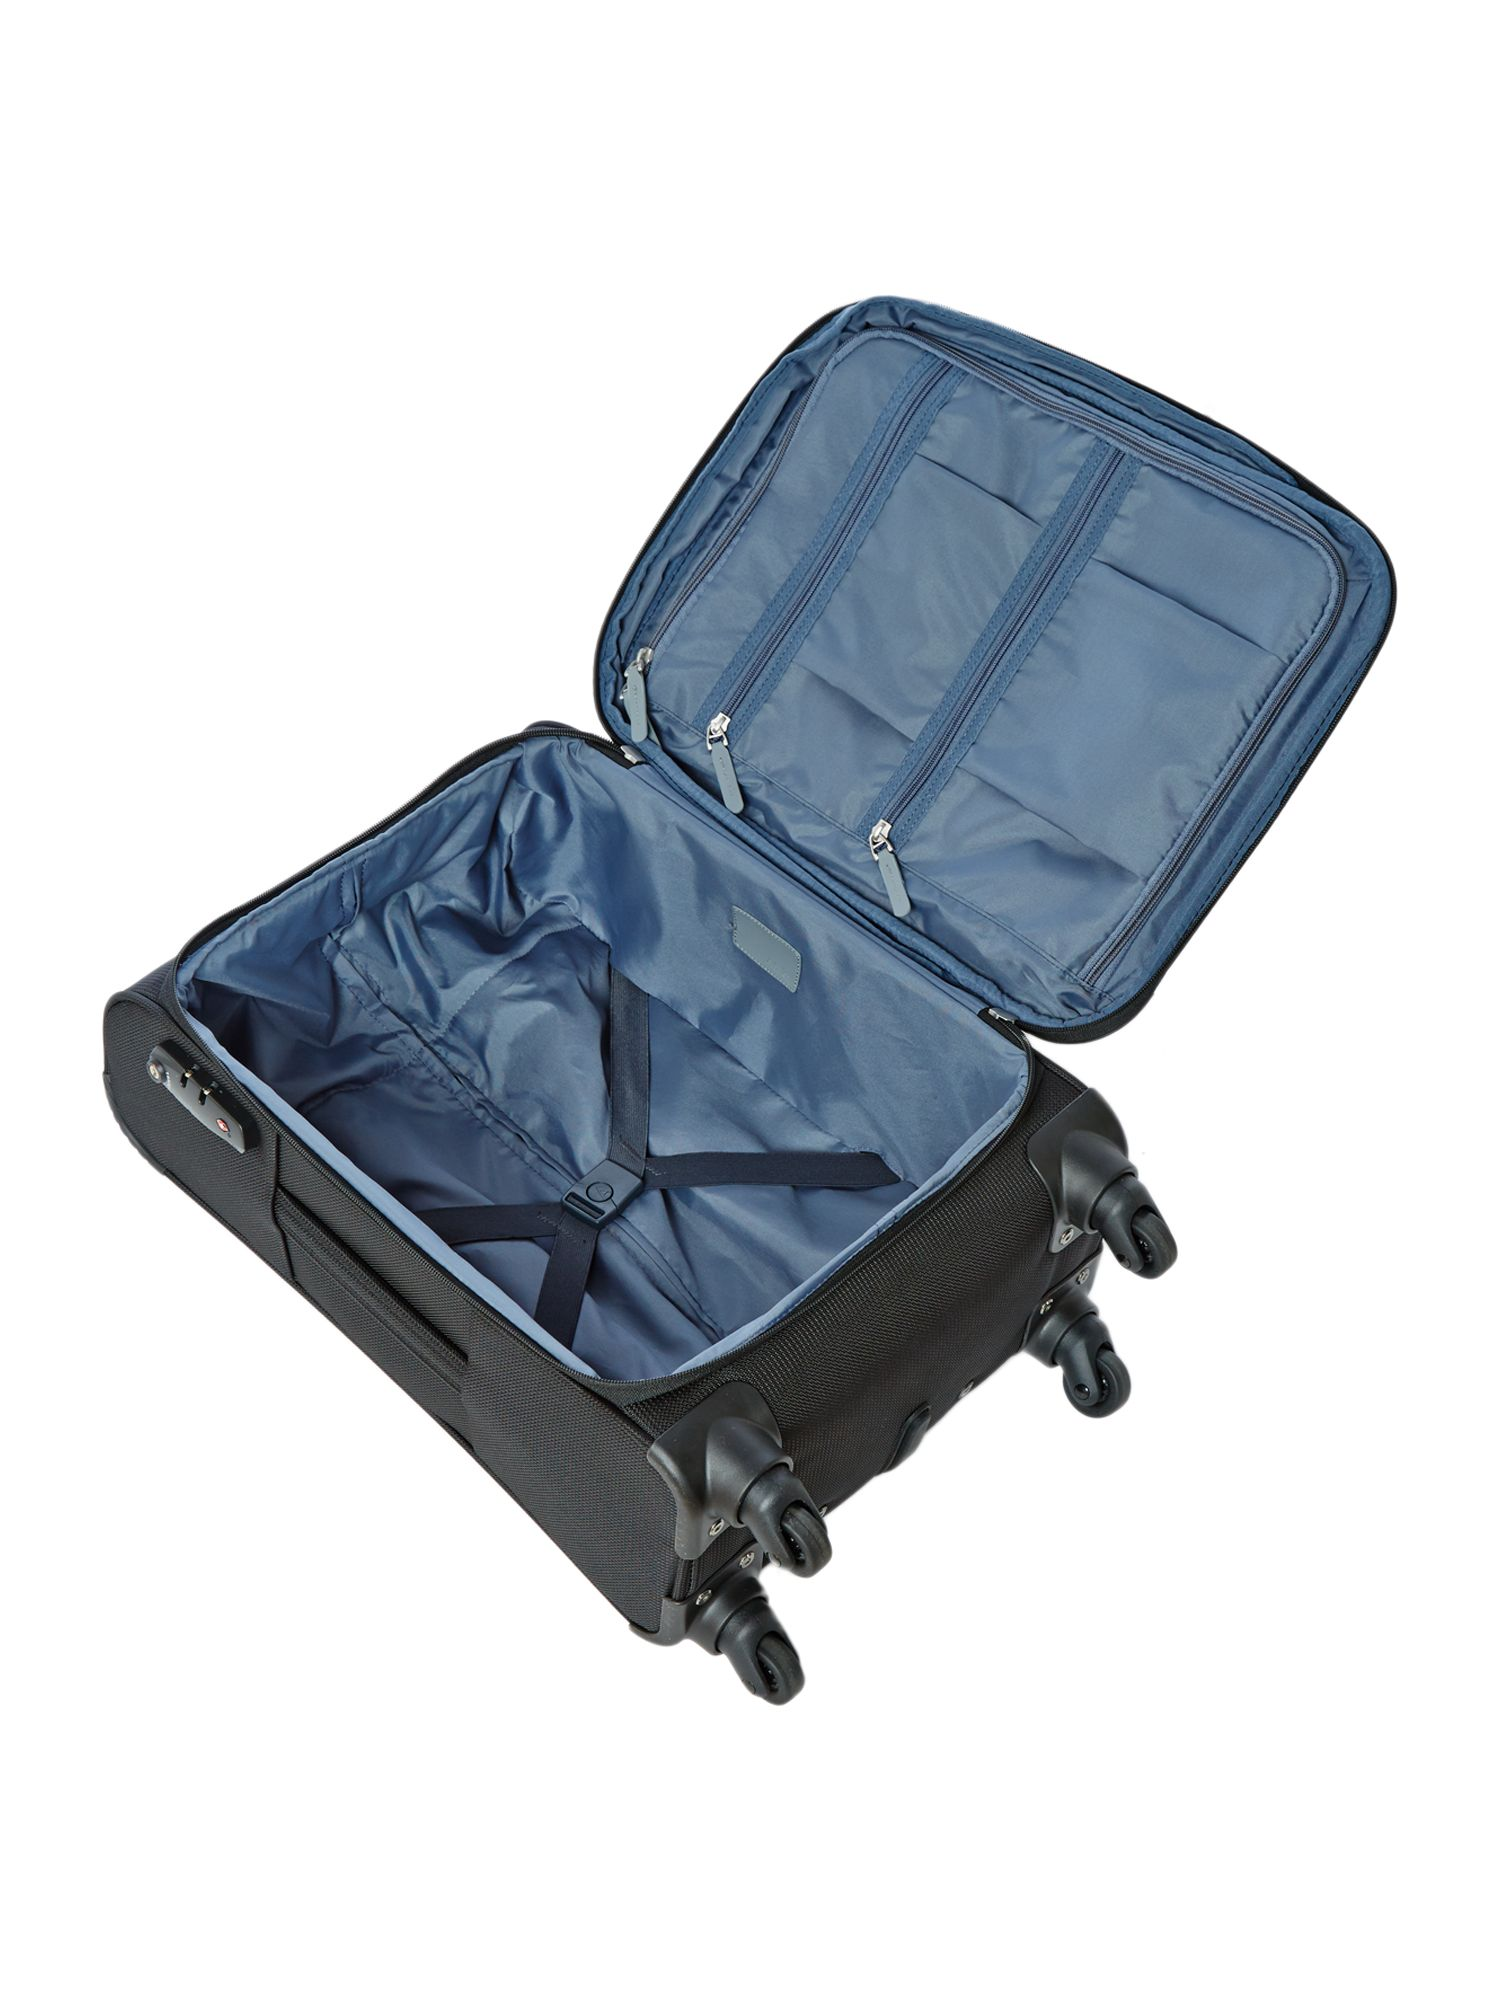 Stephano cabin black suitcase